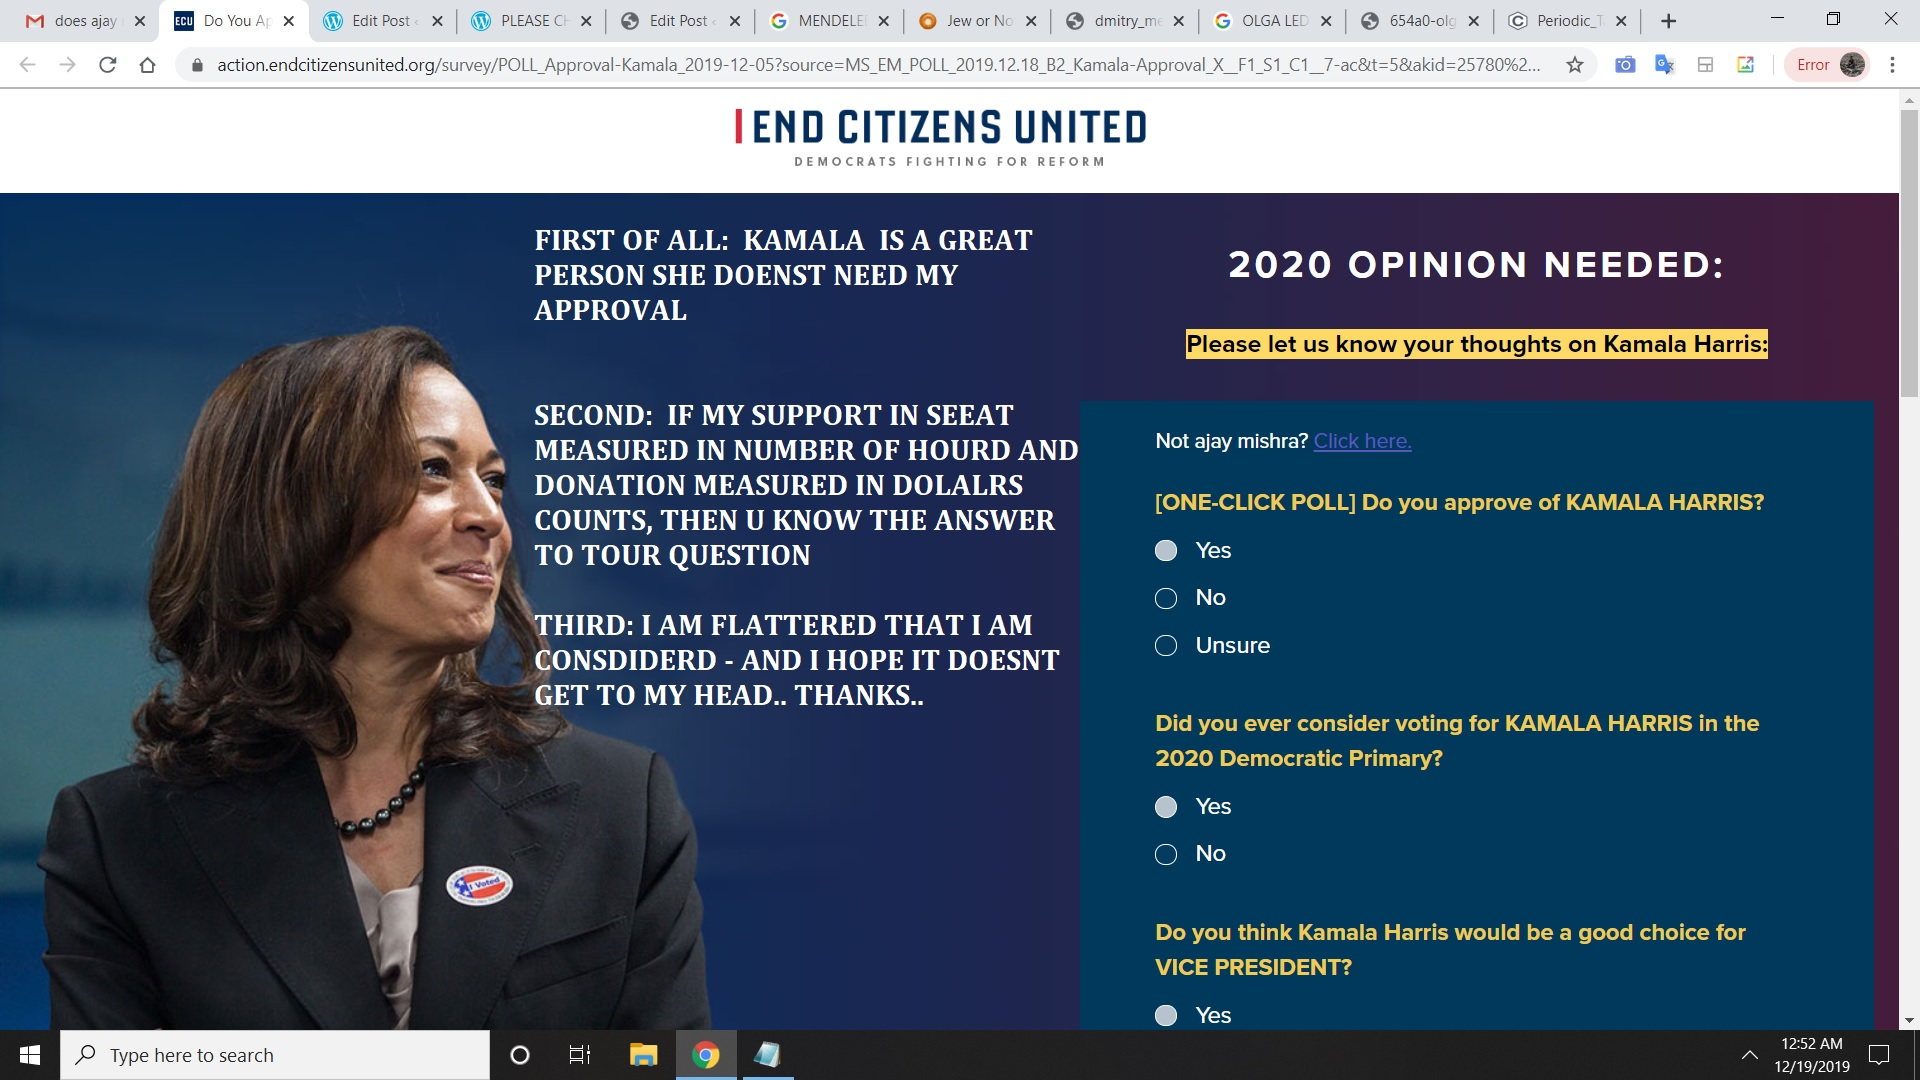 KAMALA HARRIS - REGADSING KAMALA HARRIS MY OPINION - THANKS, AJAY